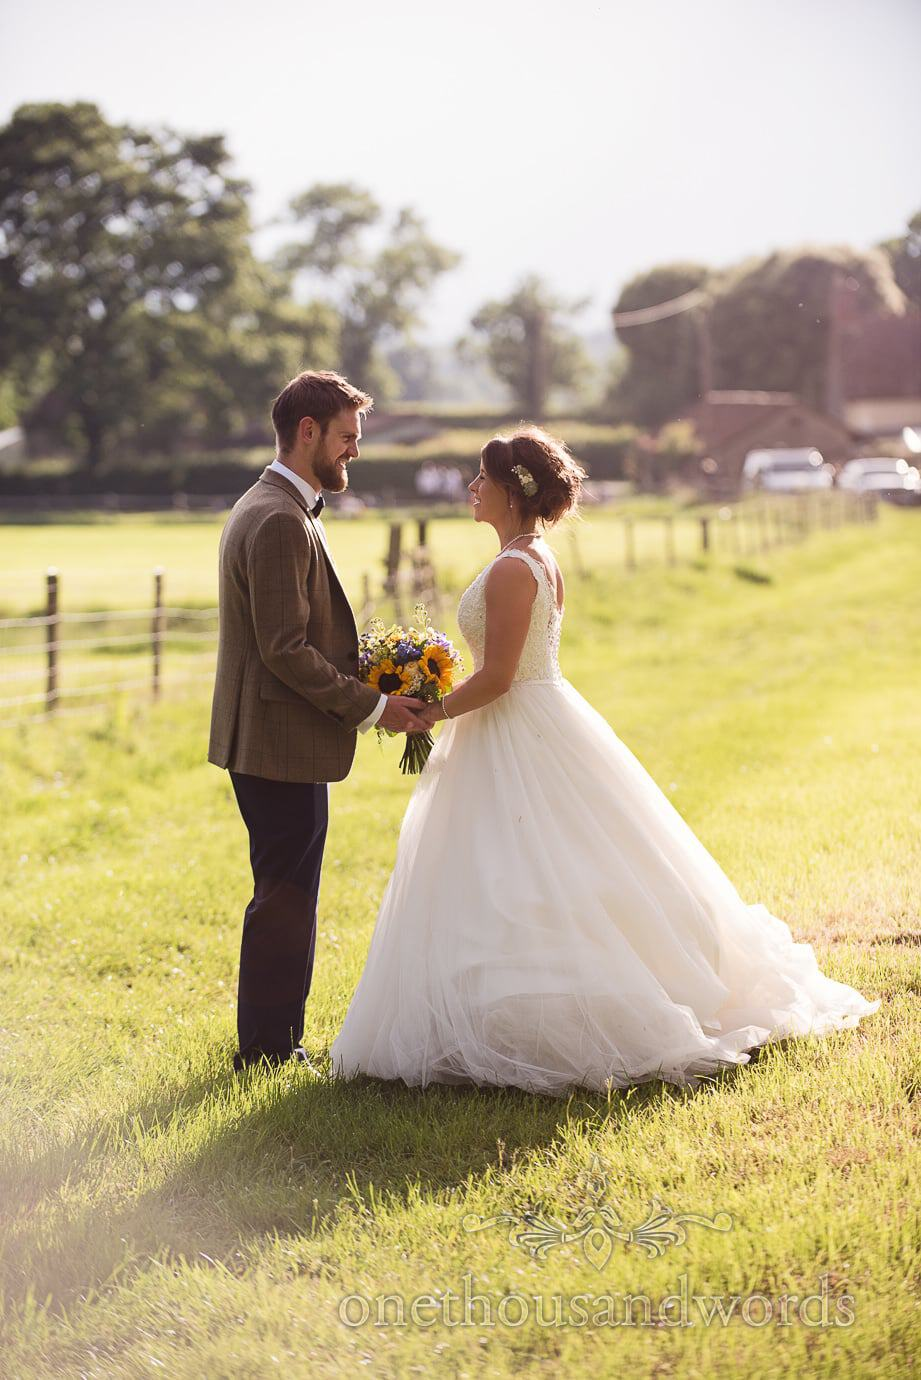 Wedding couple embrace in the afternoon sunshine at countryside rustic wedding